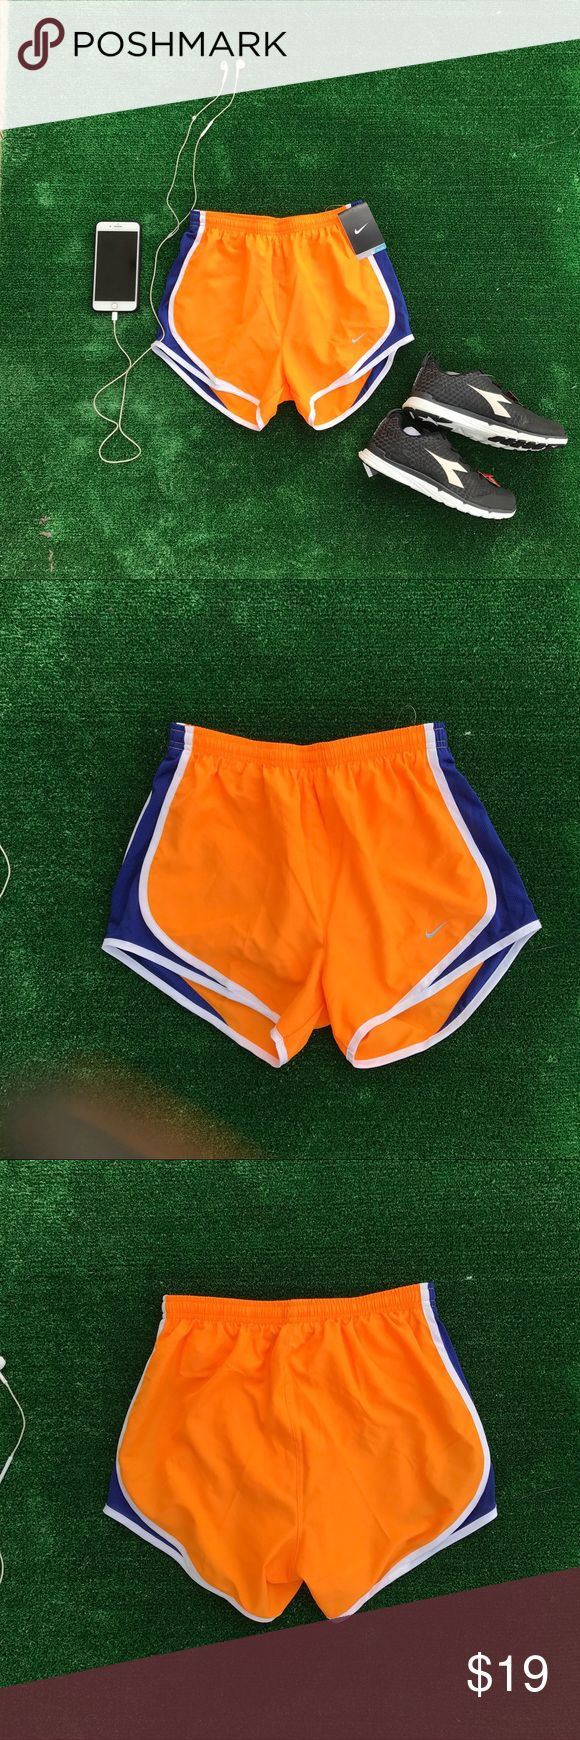 Nike Women's Dri Fit Orange Running Shorts # 868 New with tags  Sizes xs and s Comfy and casual shorts Nike Shorts